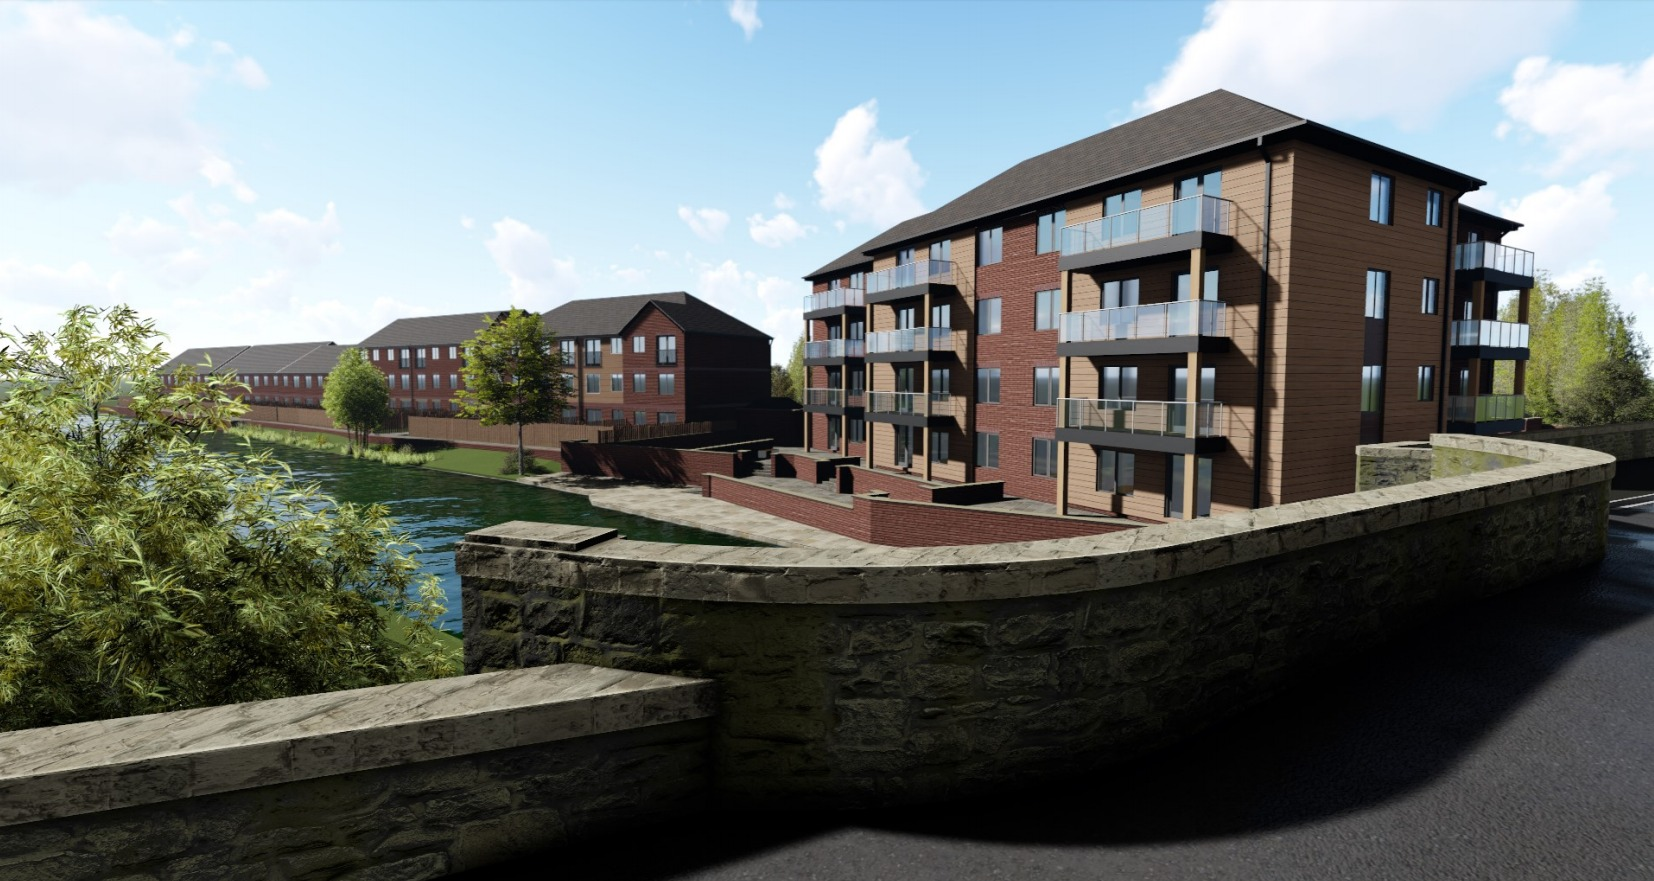 How the flats at Barden Mill could look